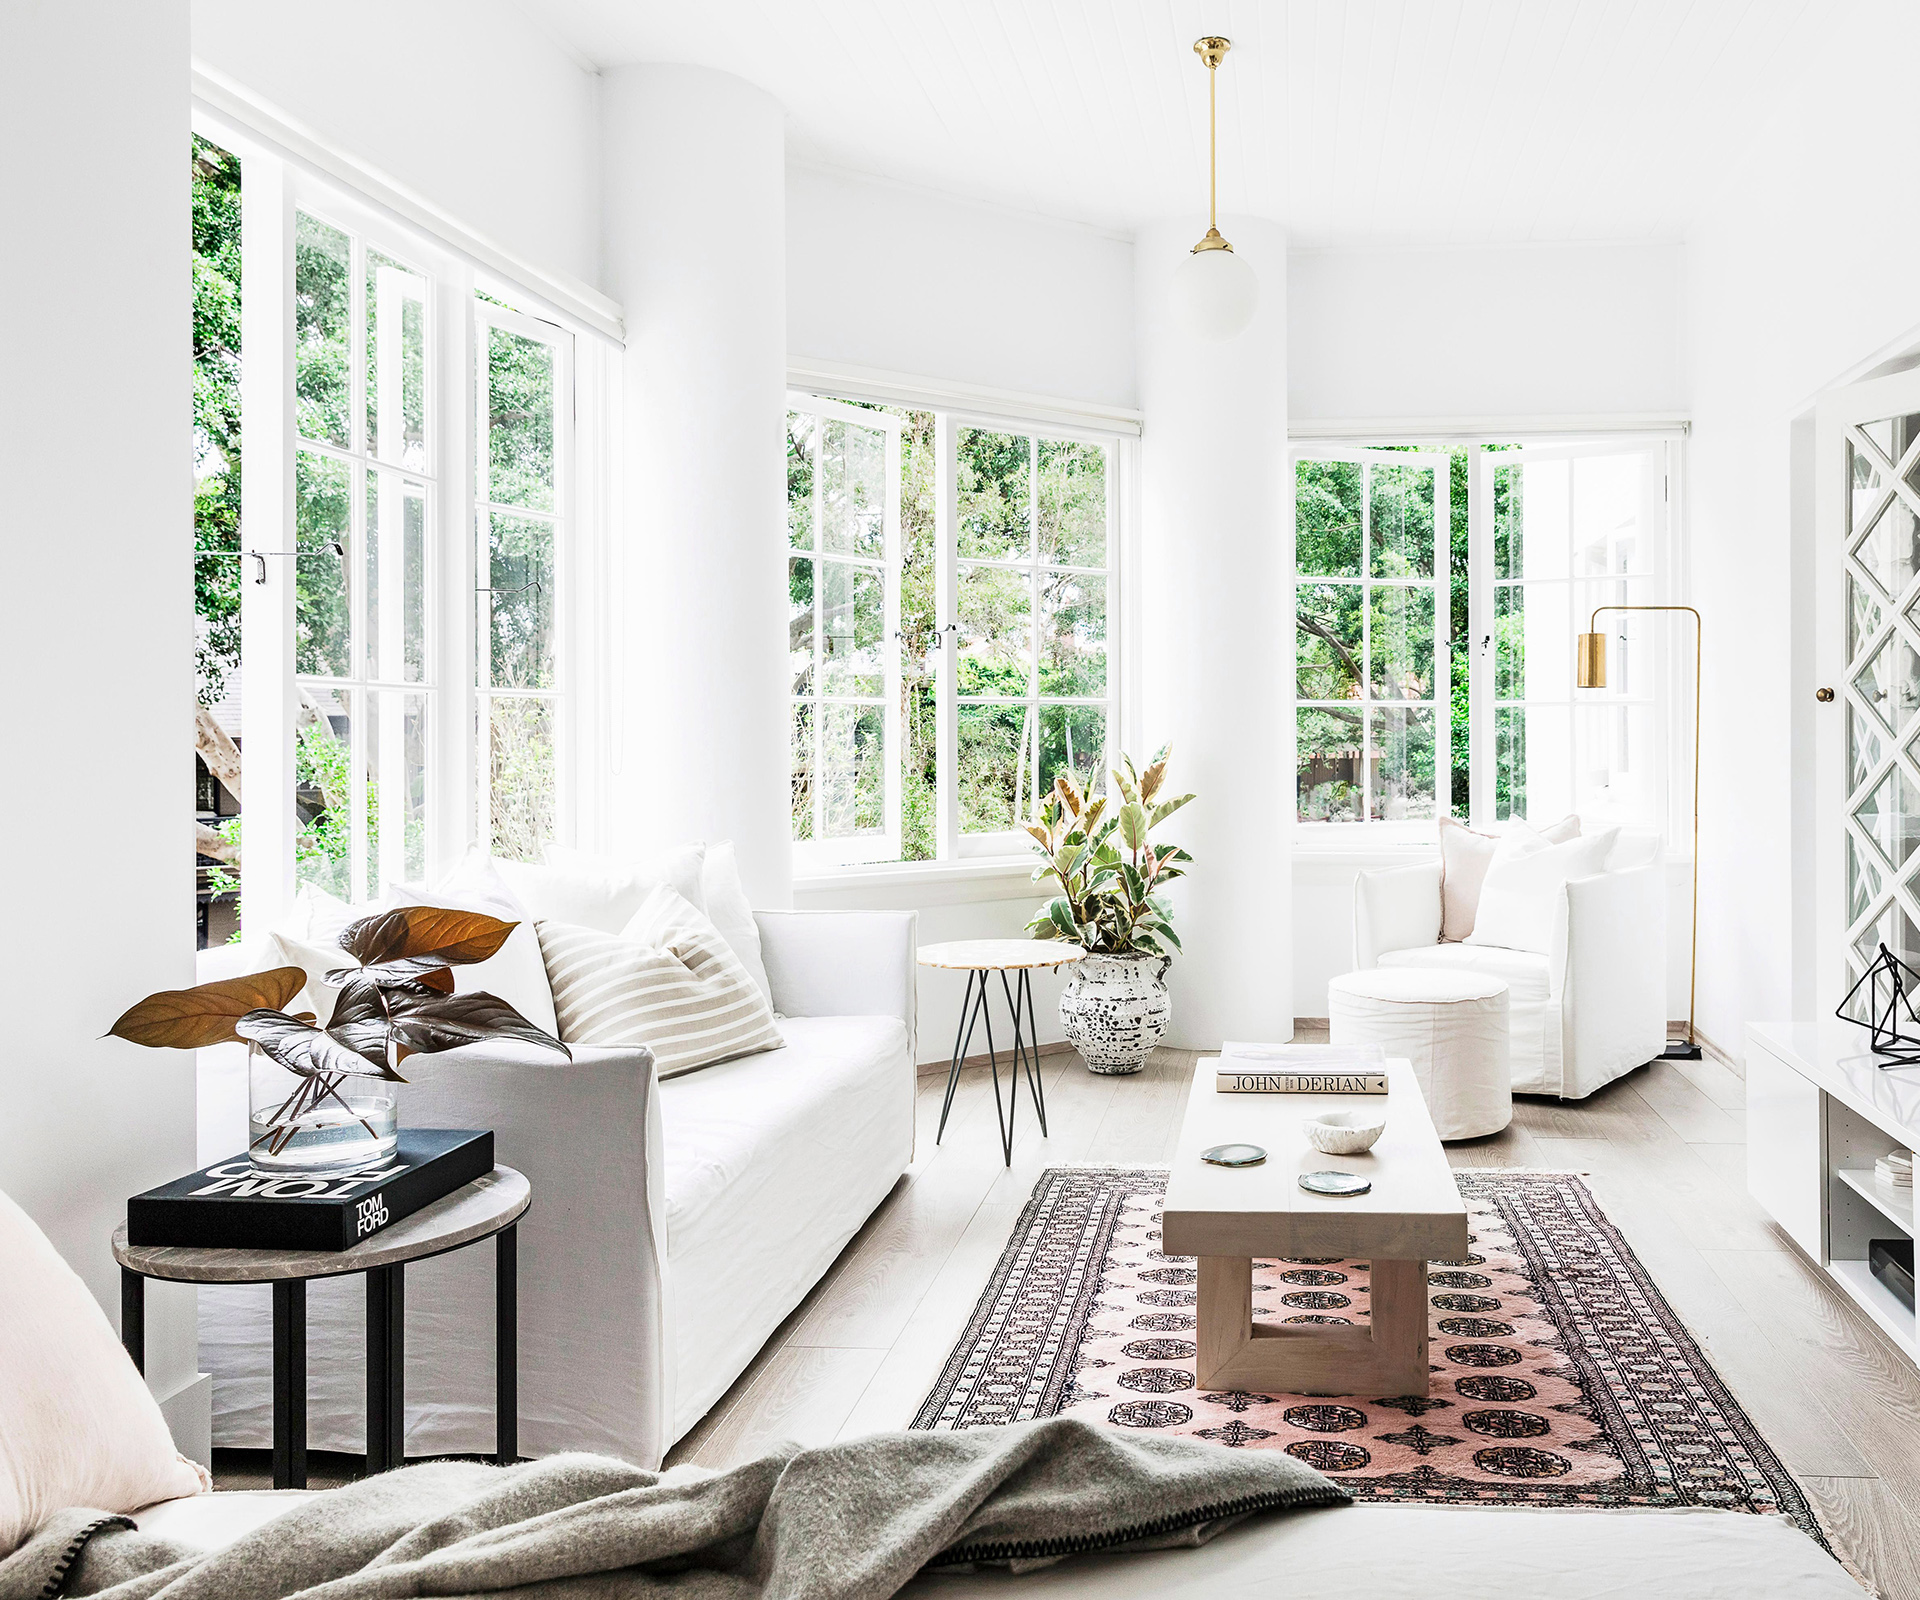 5 finishing touches that make a house feel like home